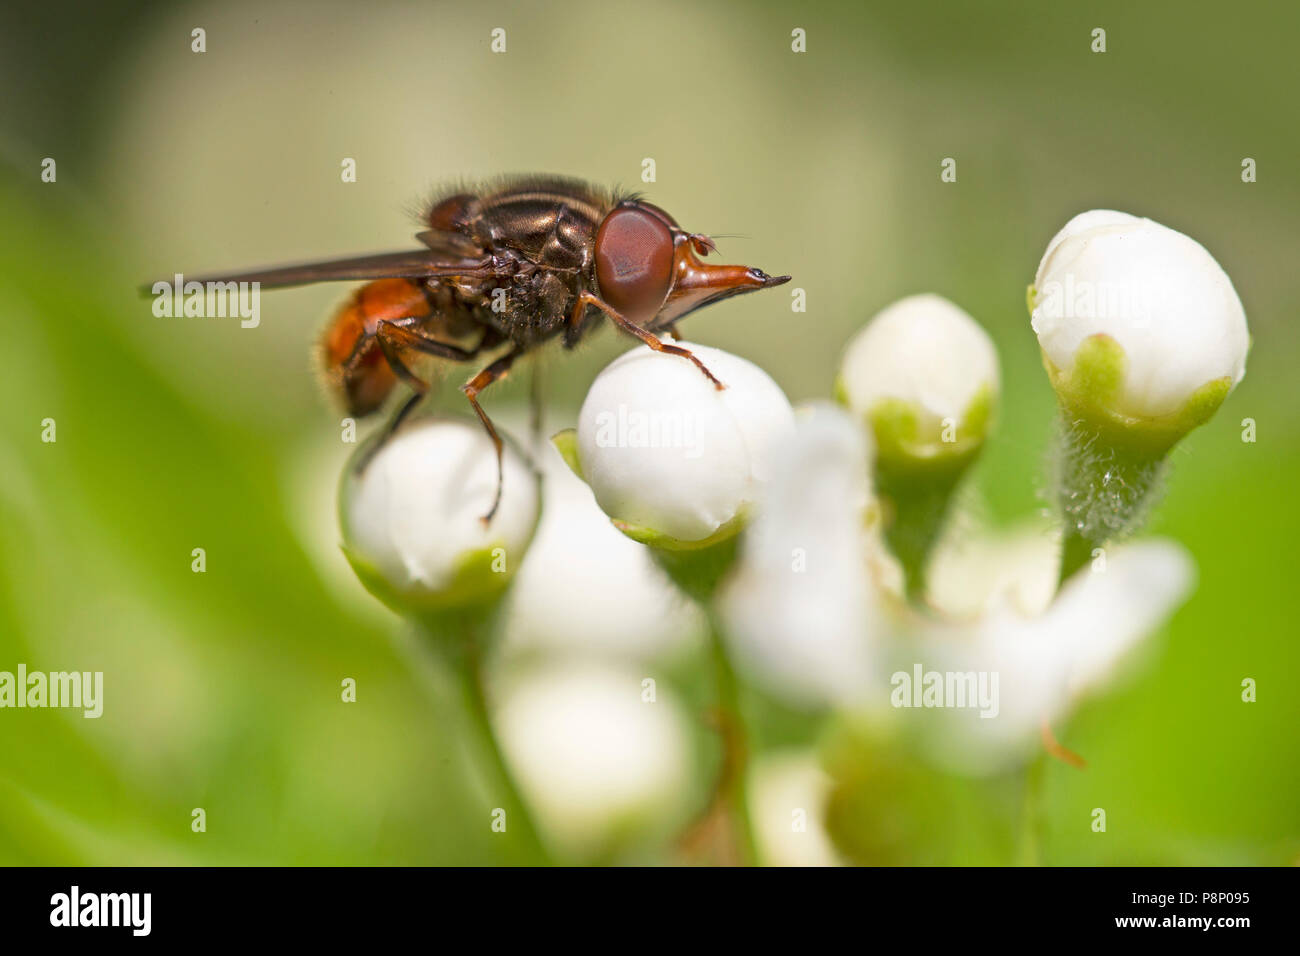 common snout-hoverfly on white flowers - Stock Image